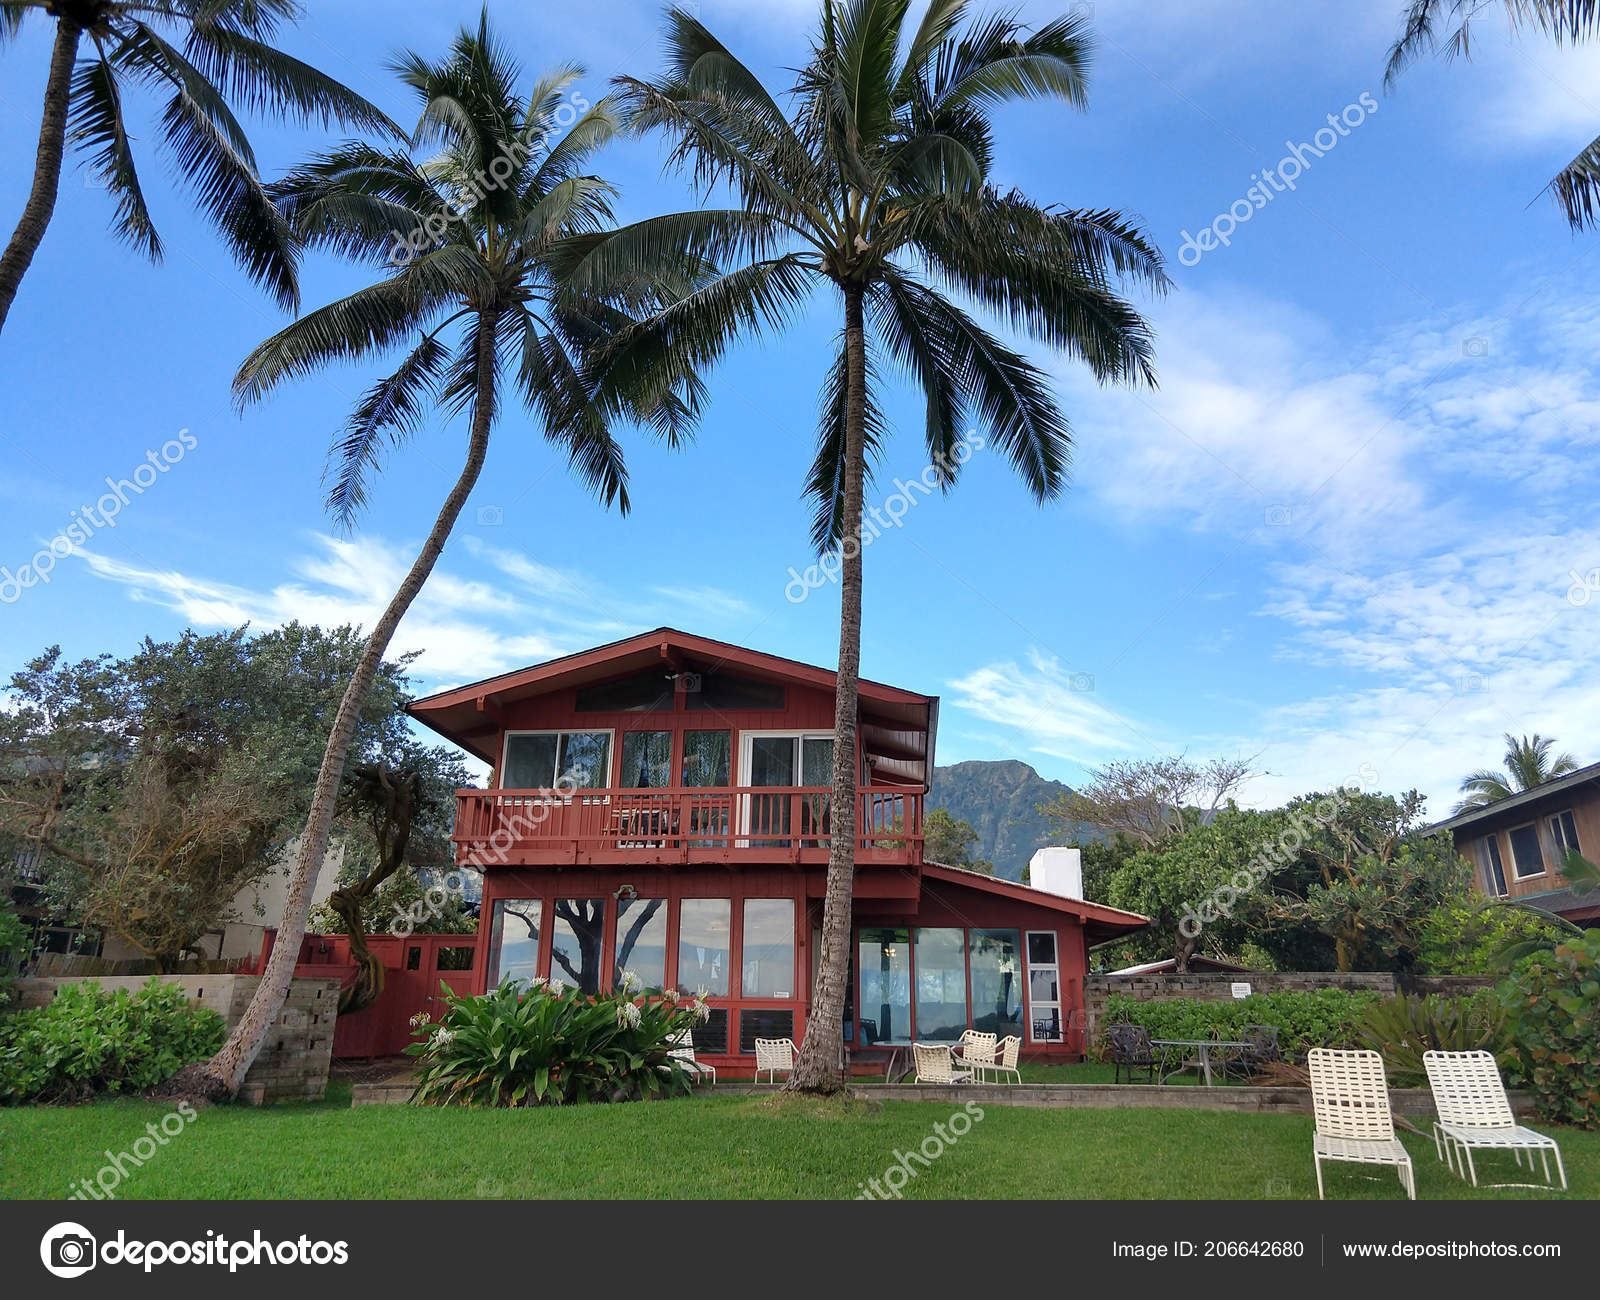 Free download beautiful beach house images